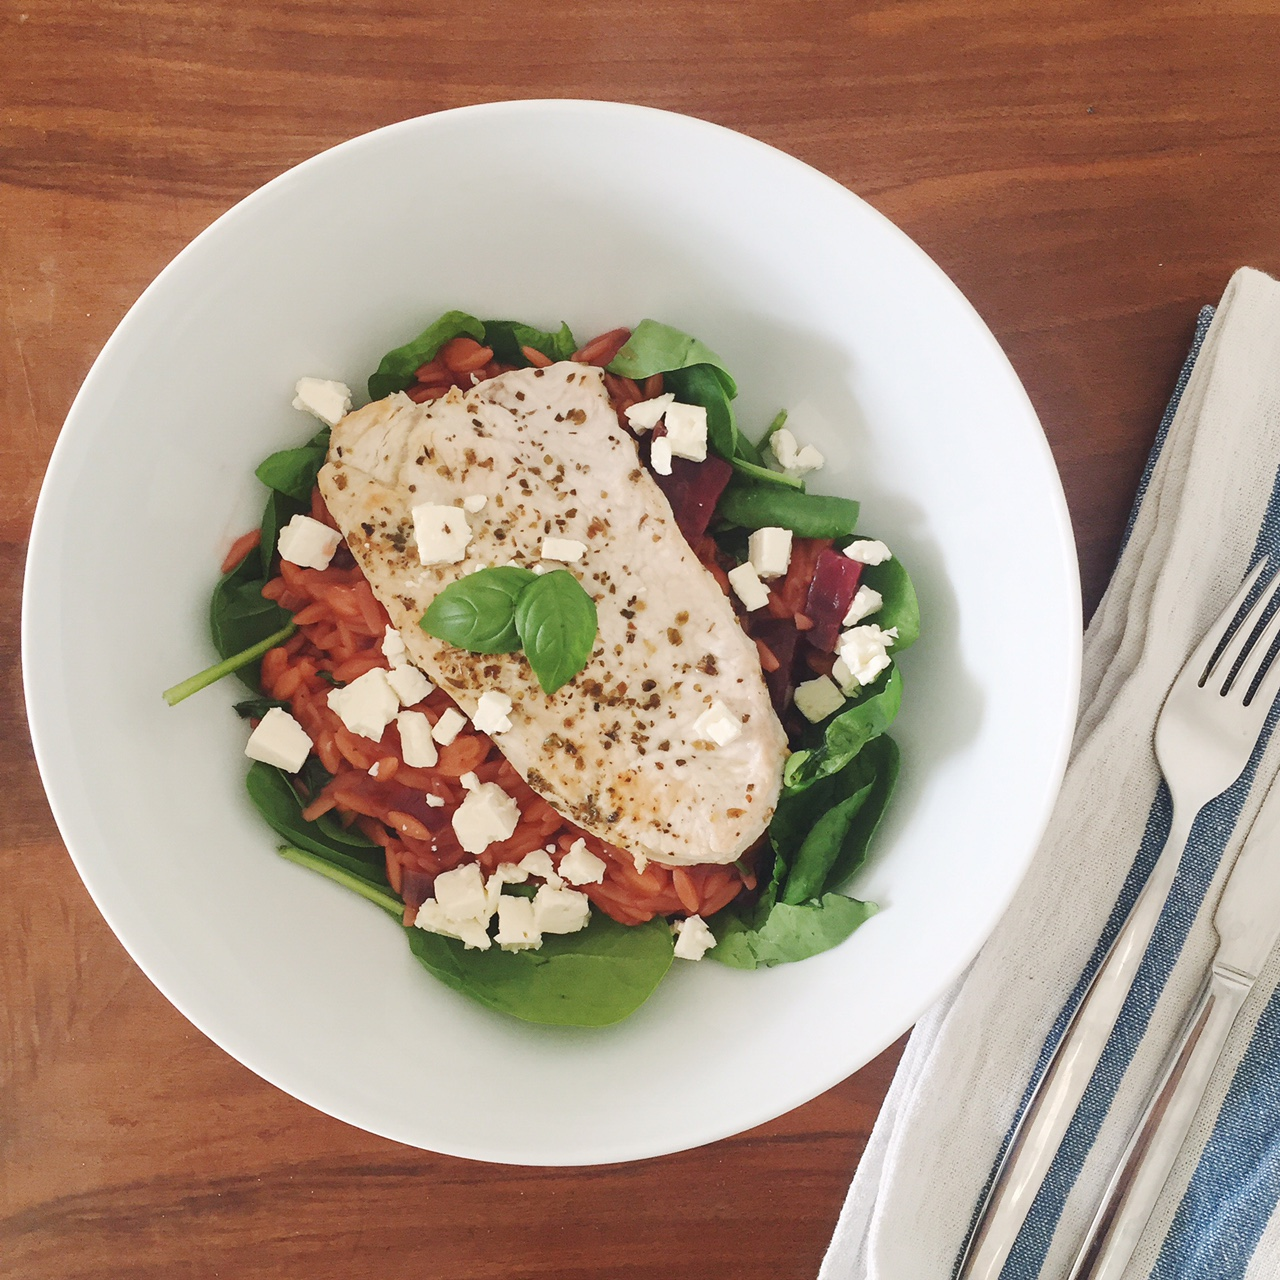 Beetroot orzotto recipe with feta, grilled turkey, on a bed of spinach